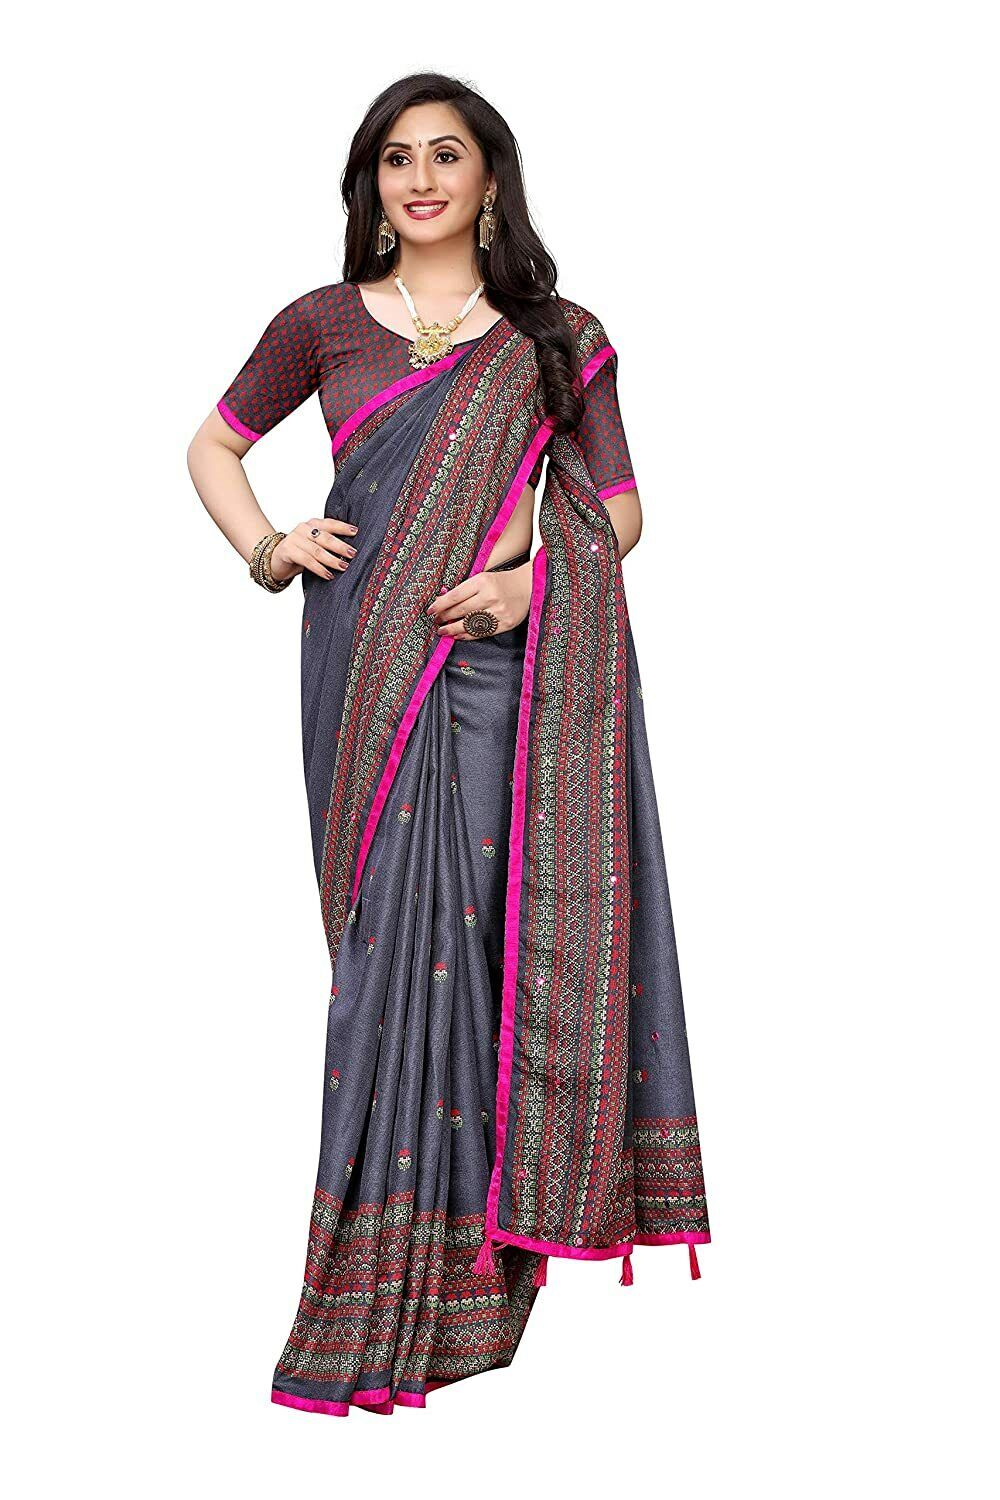 Women's Jute Silk Printed Mirror Embroidery Saree With Unstiched Blouse